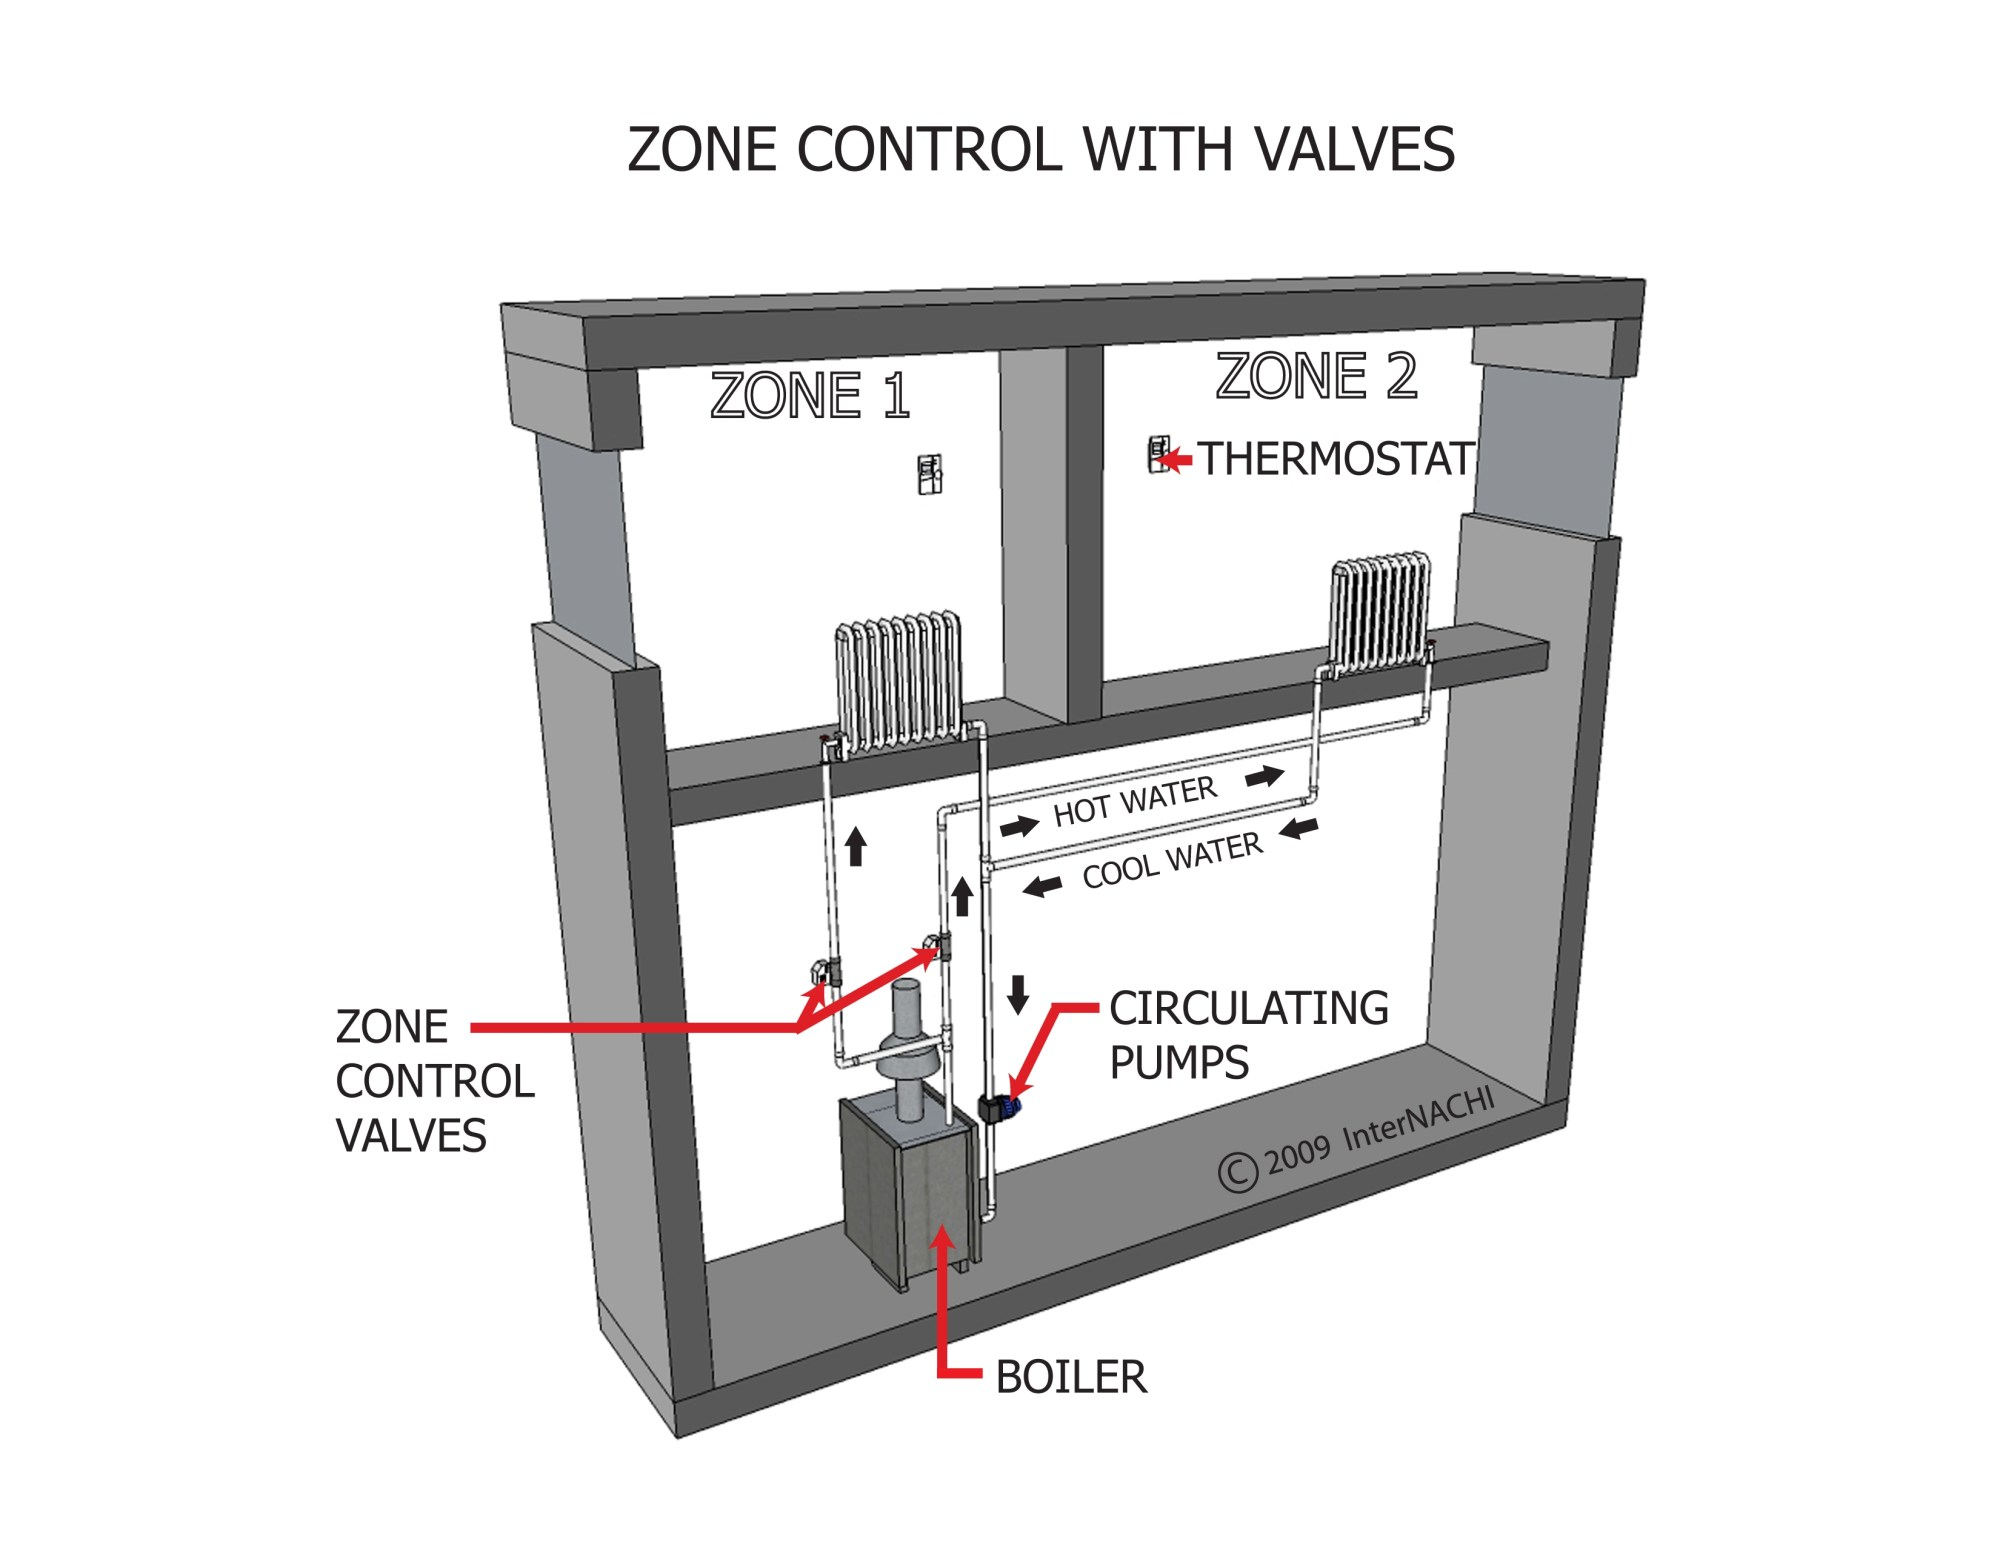 hight resolution of zone control valves hydronic heating images